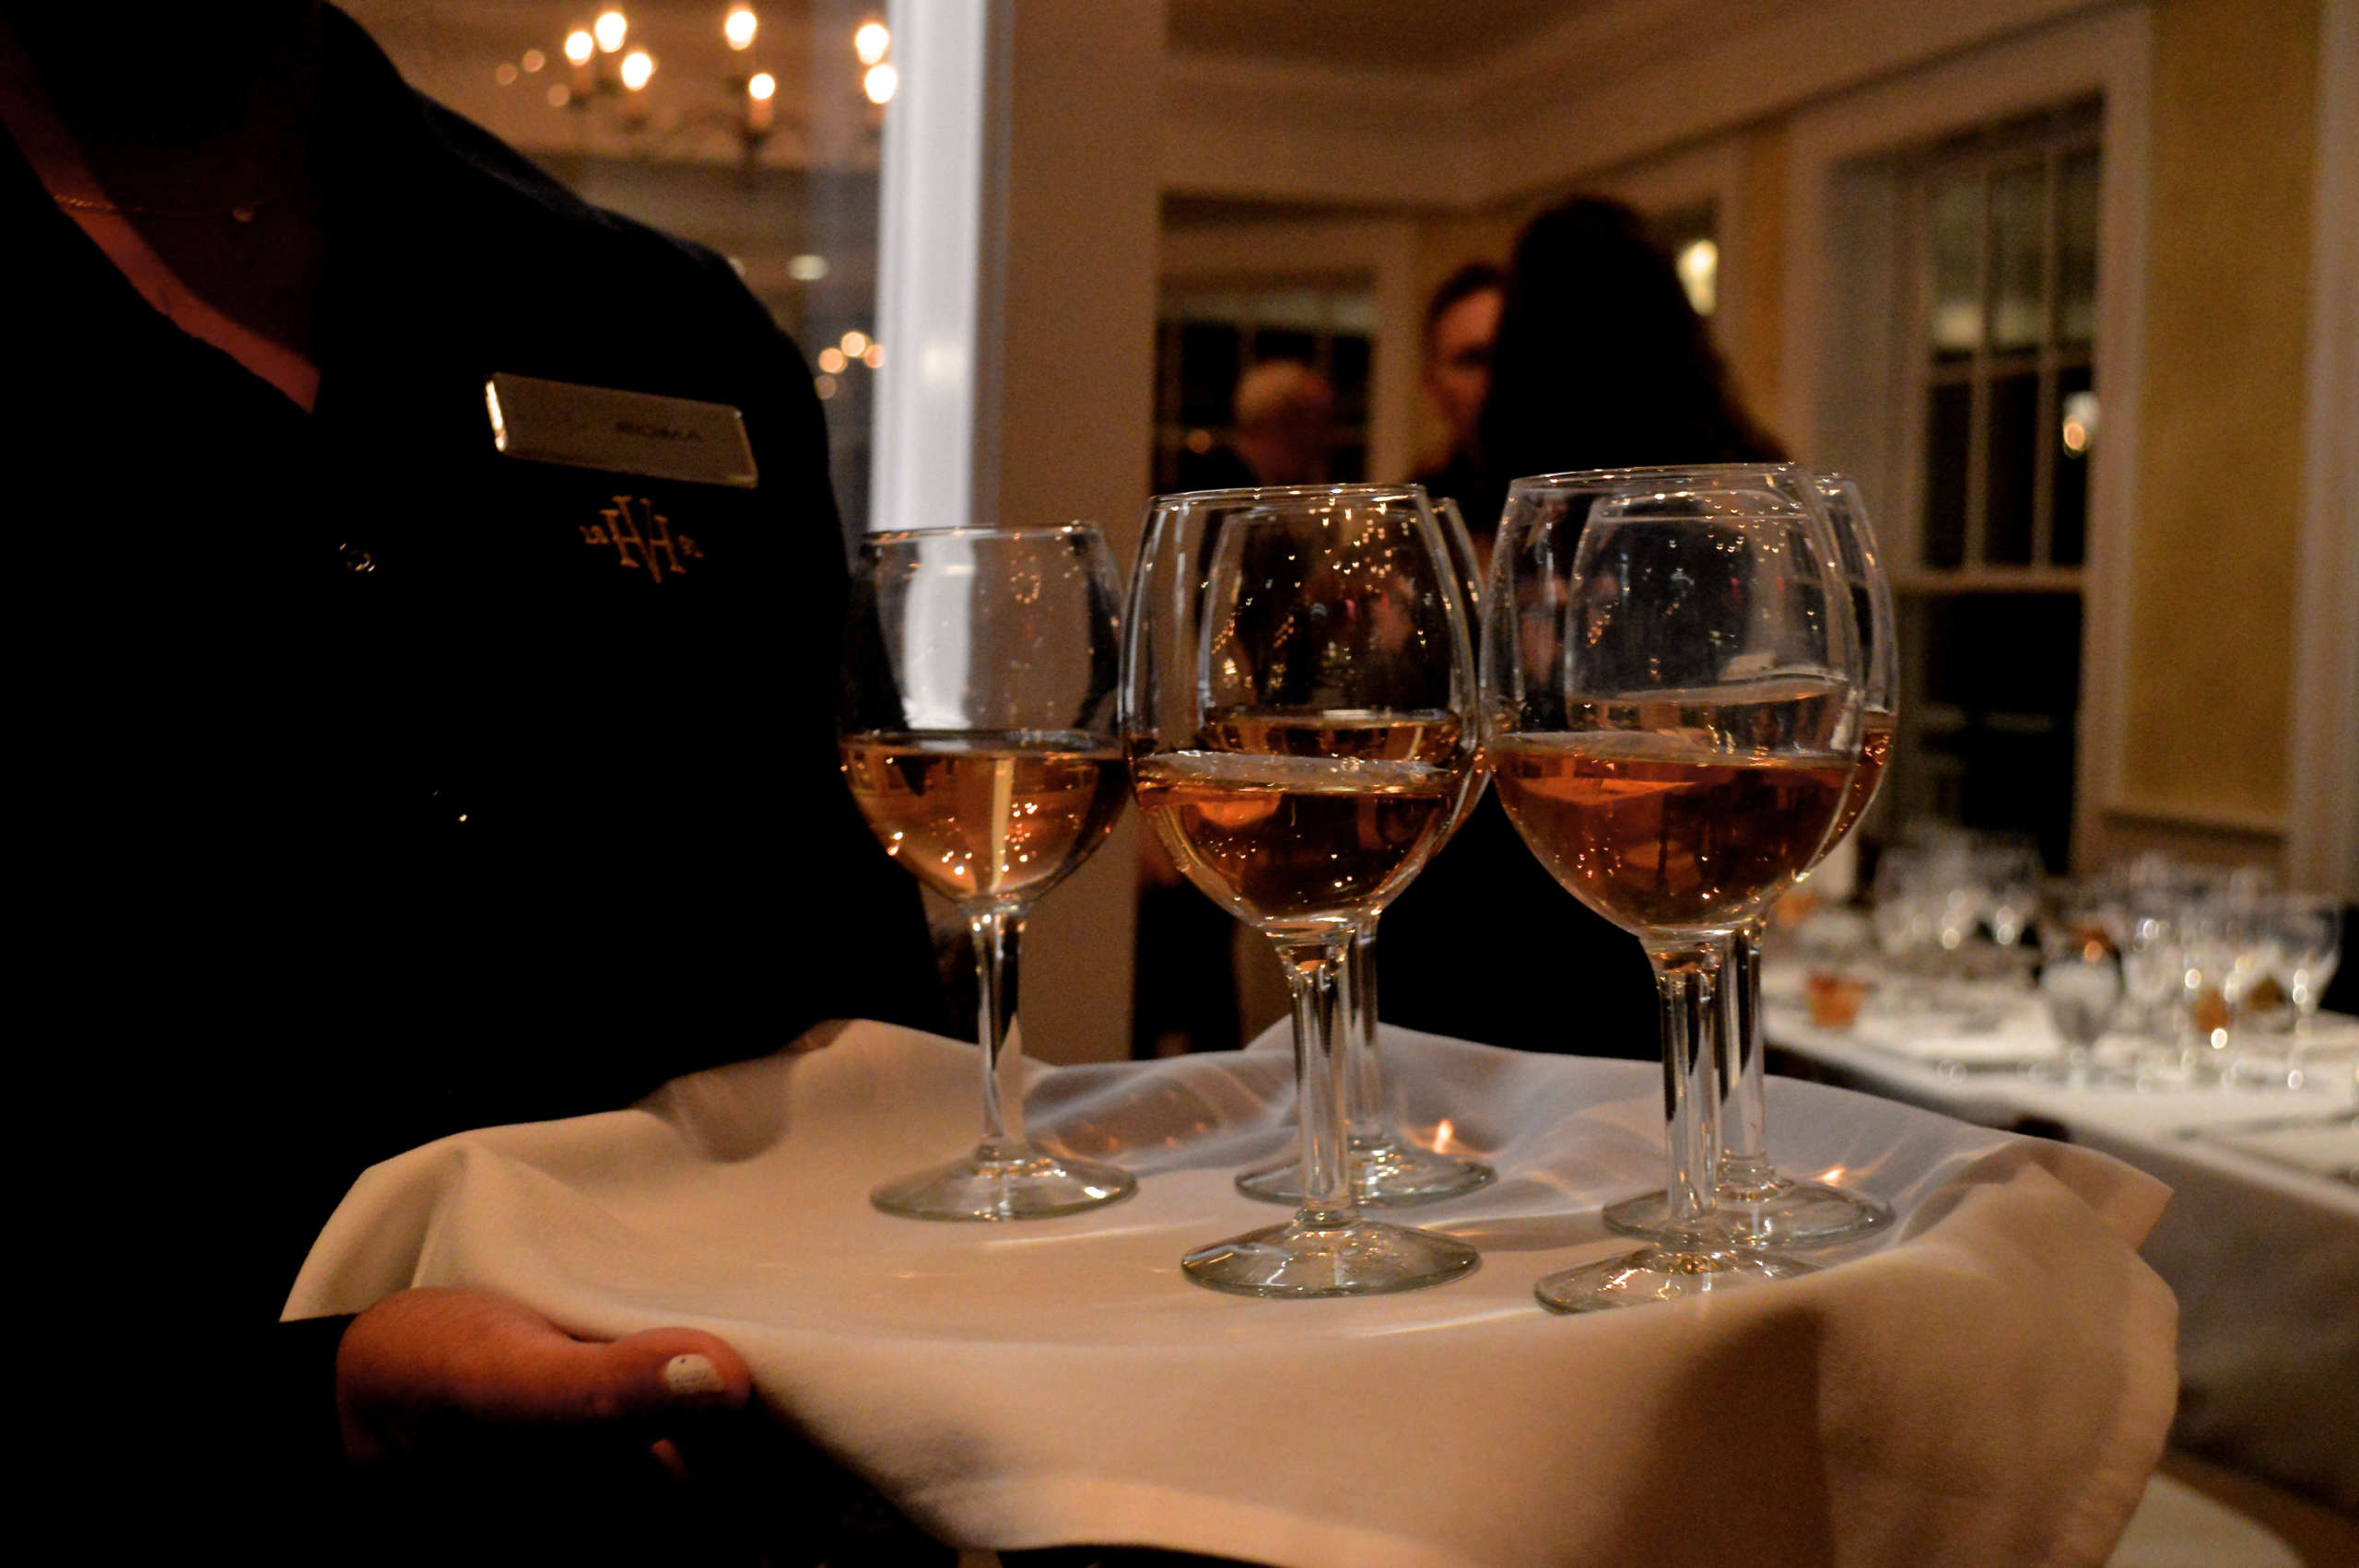 A server holding a tray of wines for a wine tasting in Bettini Restaurant.